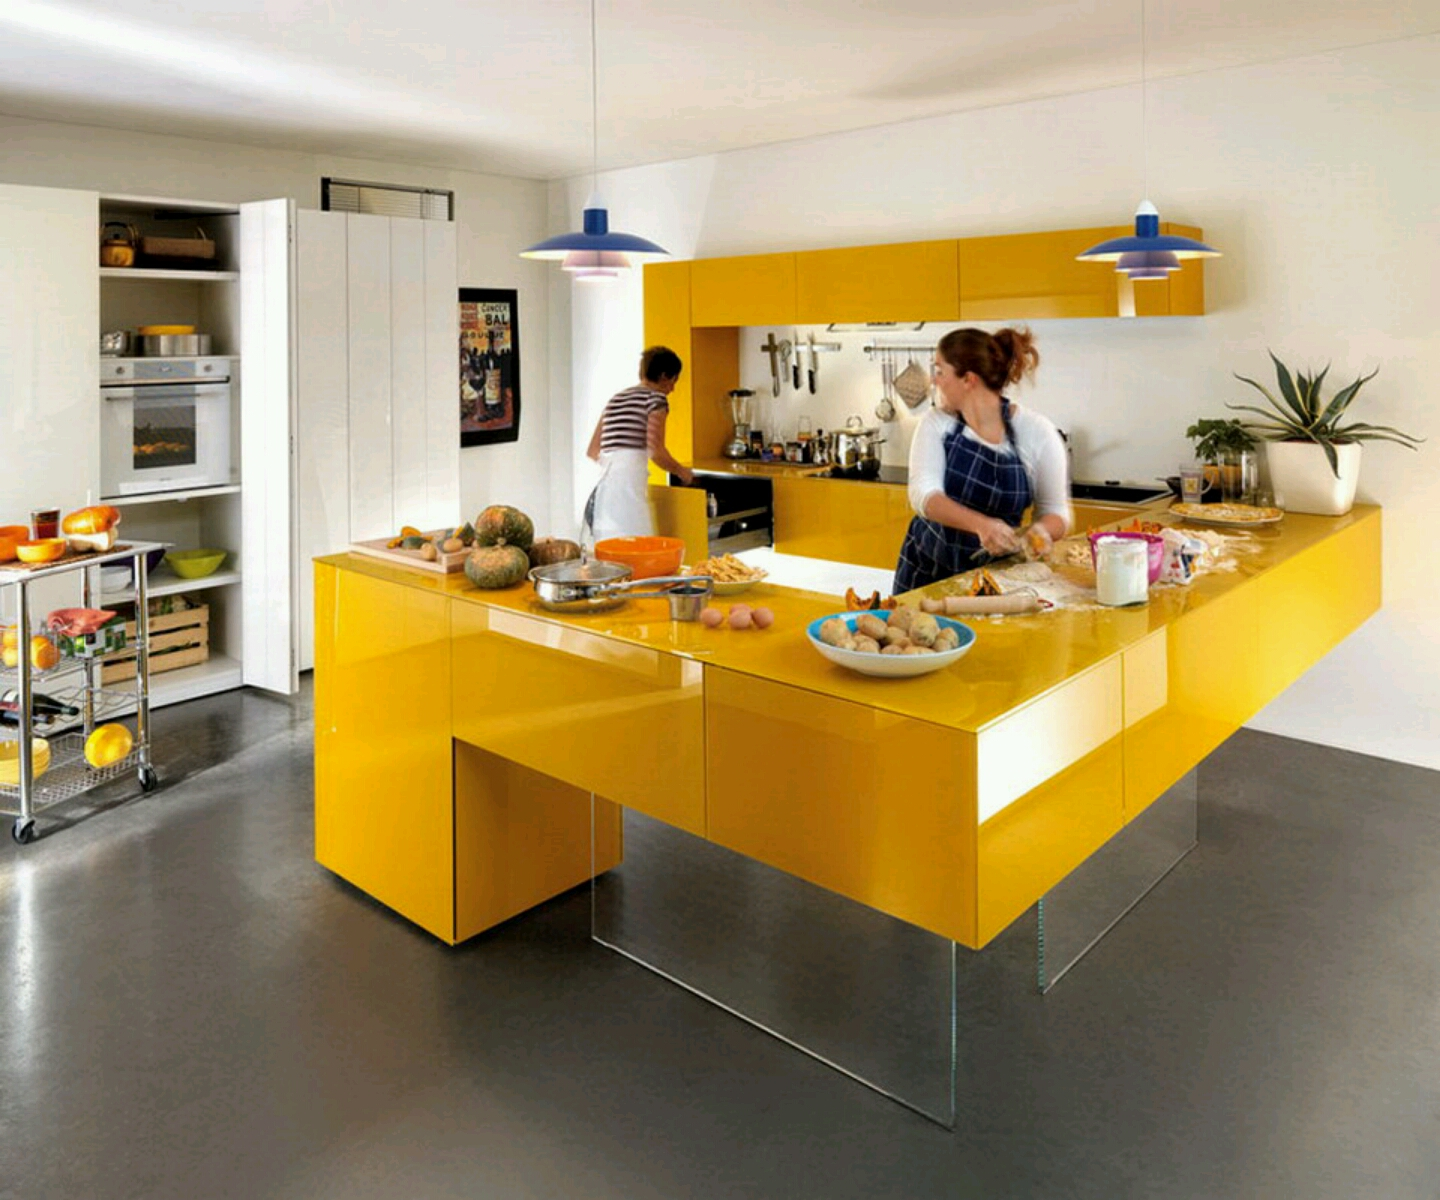 Modern kitchen cabinets designs ideas furniture gallery for Modern kitchen units designs